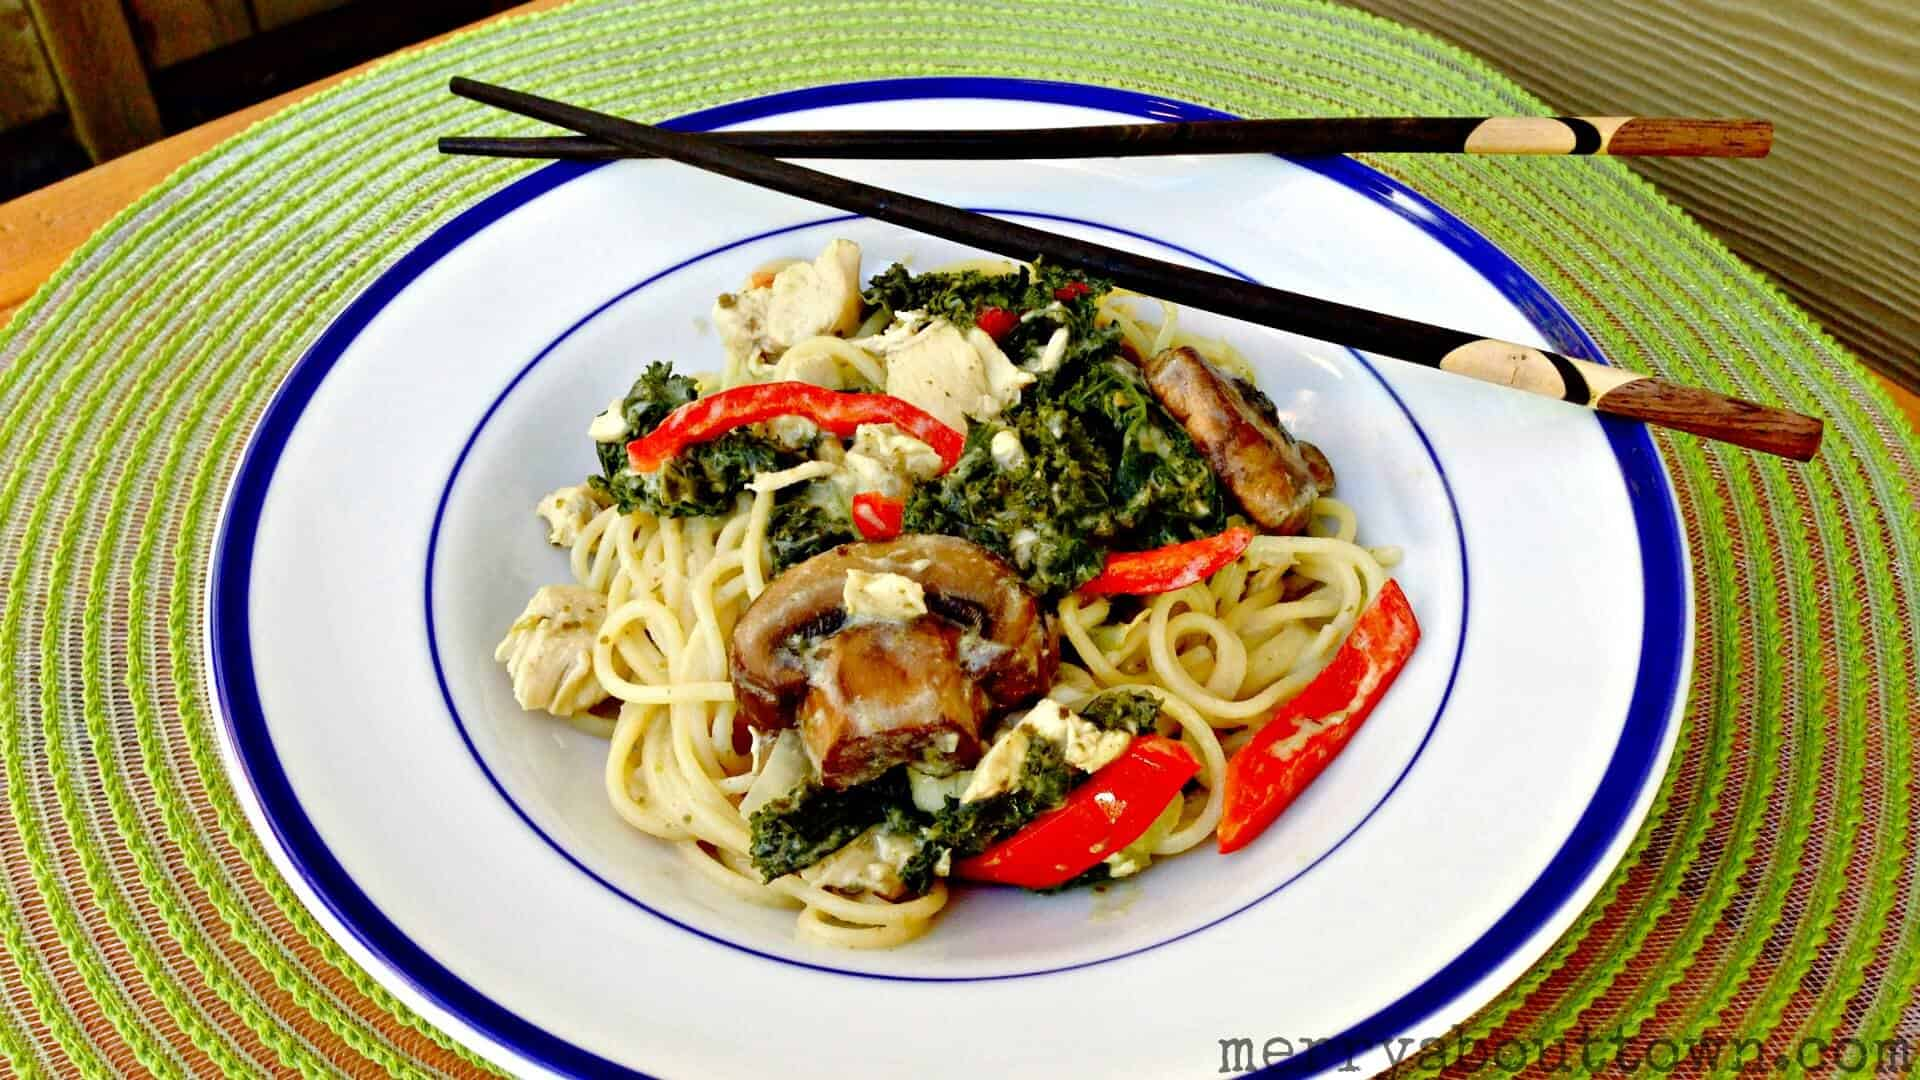 Green Curry Chicken Noodles - Merry About Town